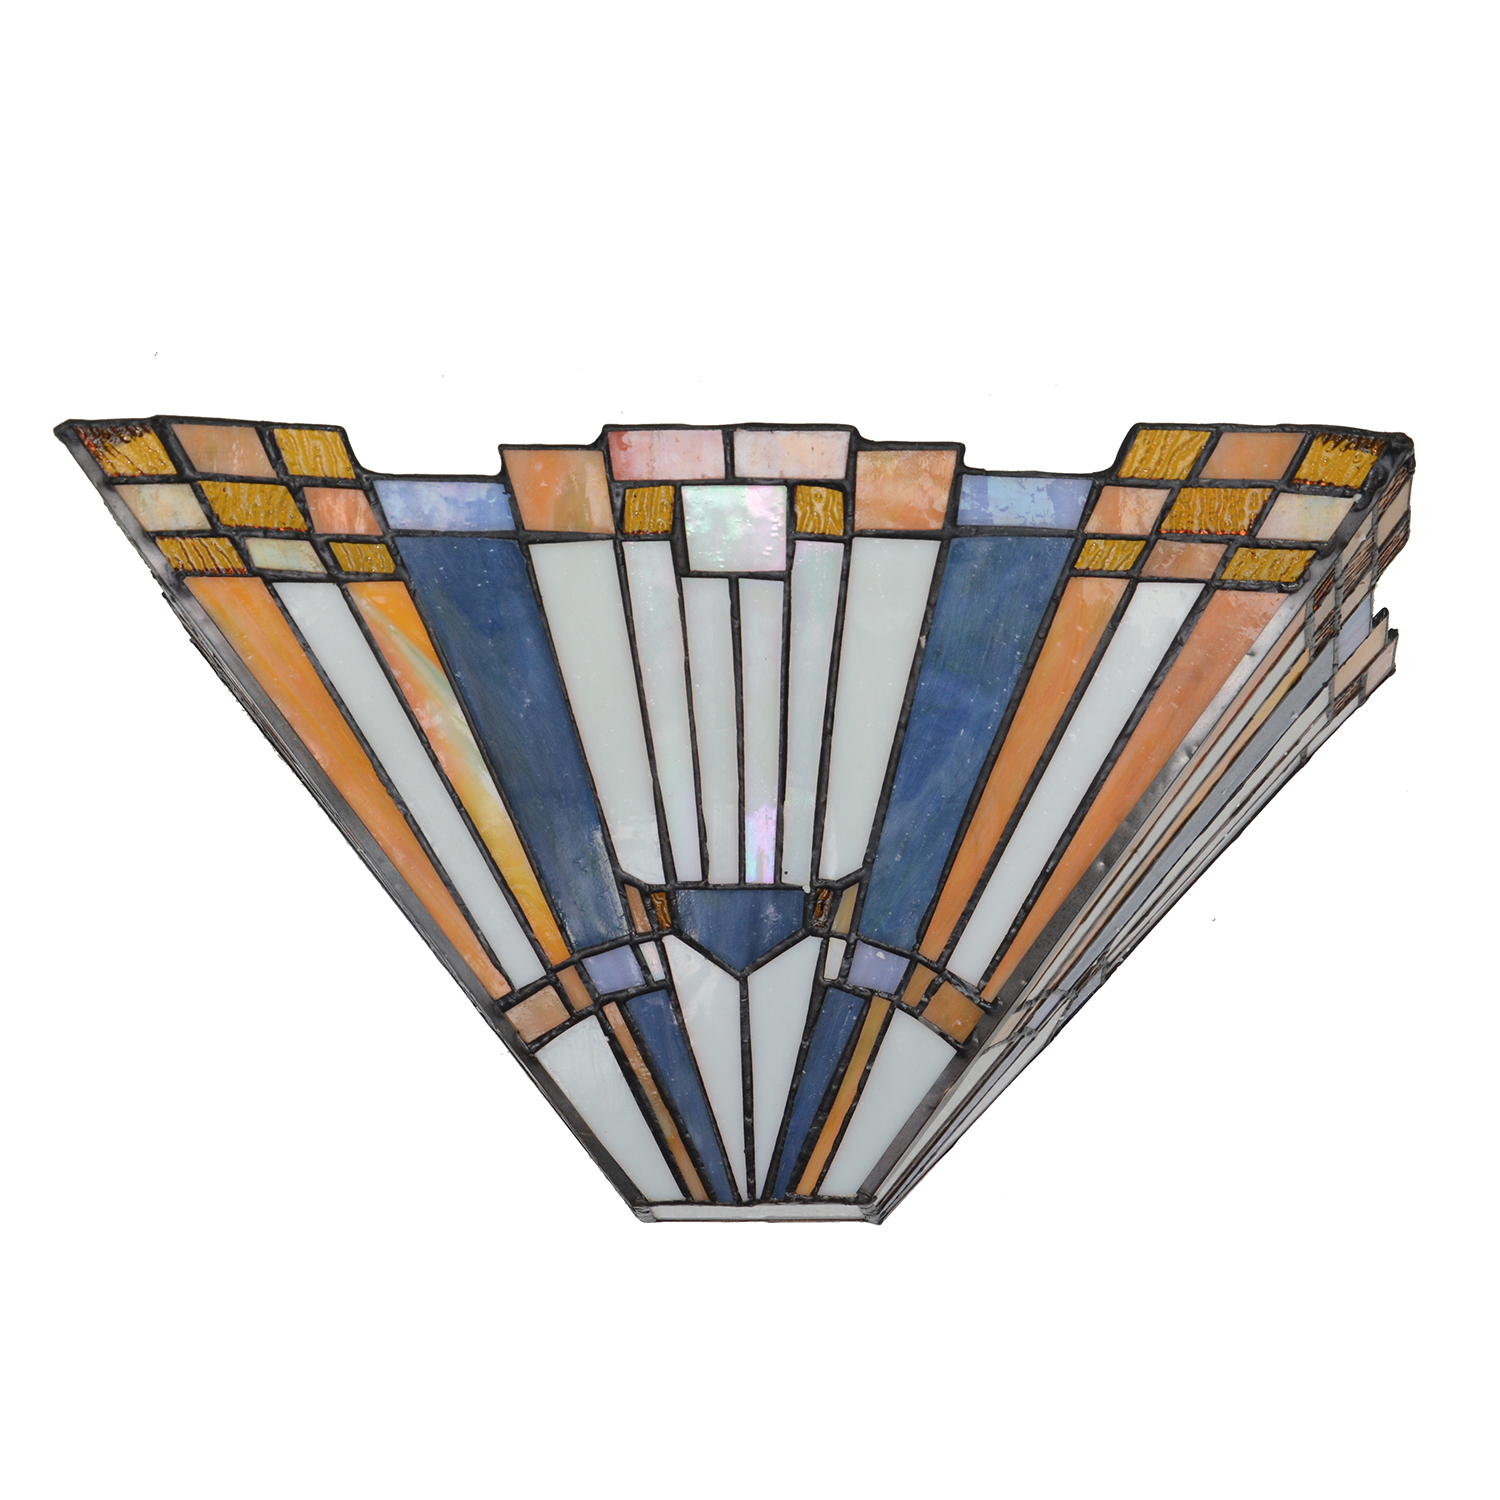 Tiffany style Inglenook Wall Sconce Stained Glass Geometric Wall Light Leaded Lamp